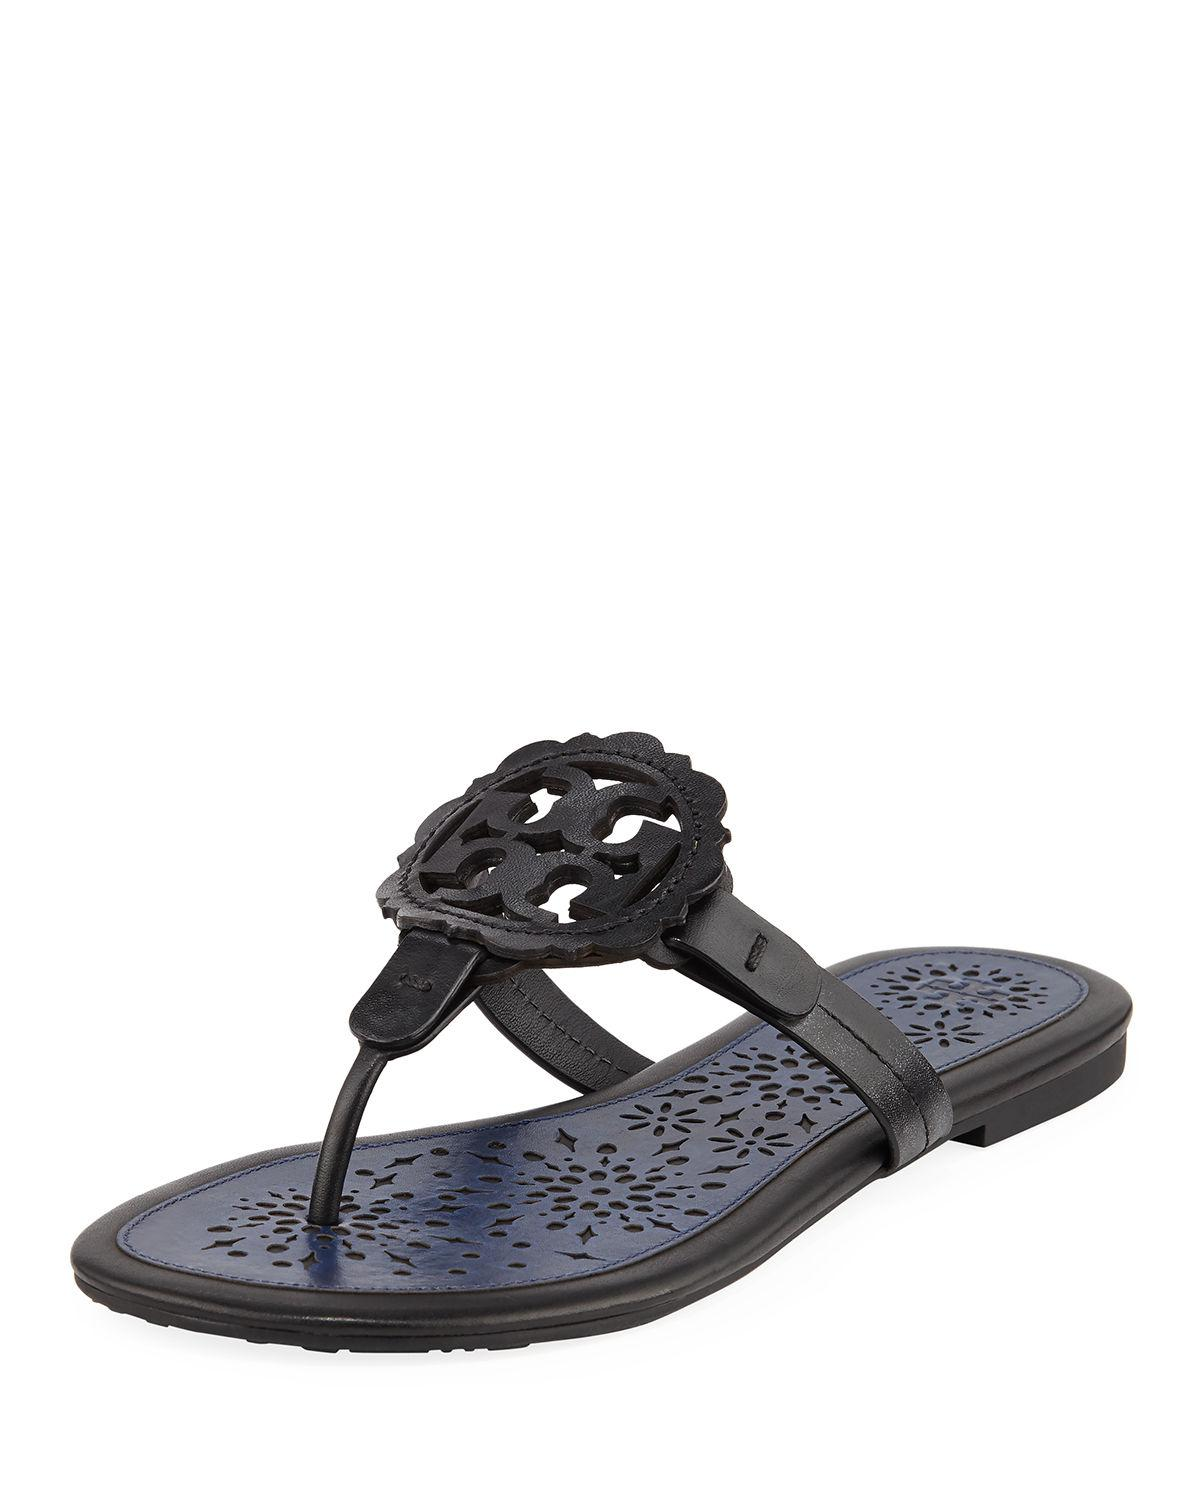 10bb0ec2983522 Lyst - Tory Burch Women s Miller Scallop Leather Thong Sandals in Blue